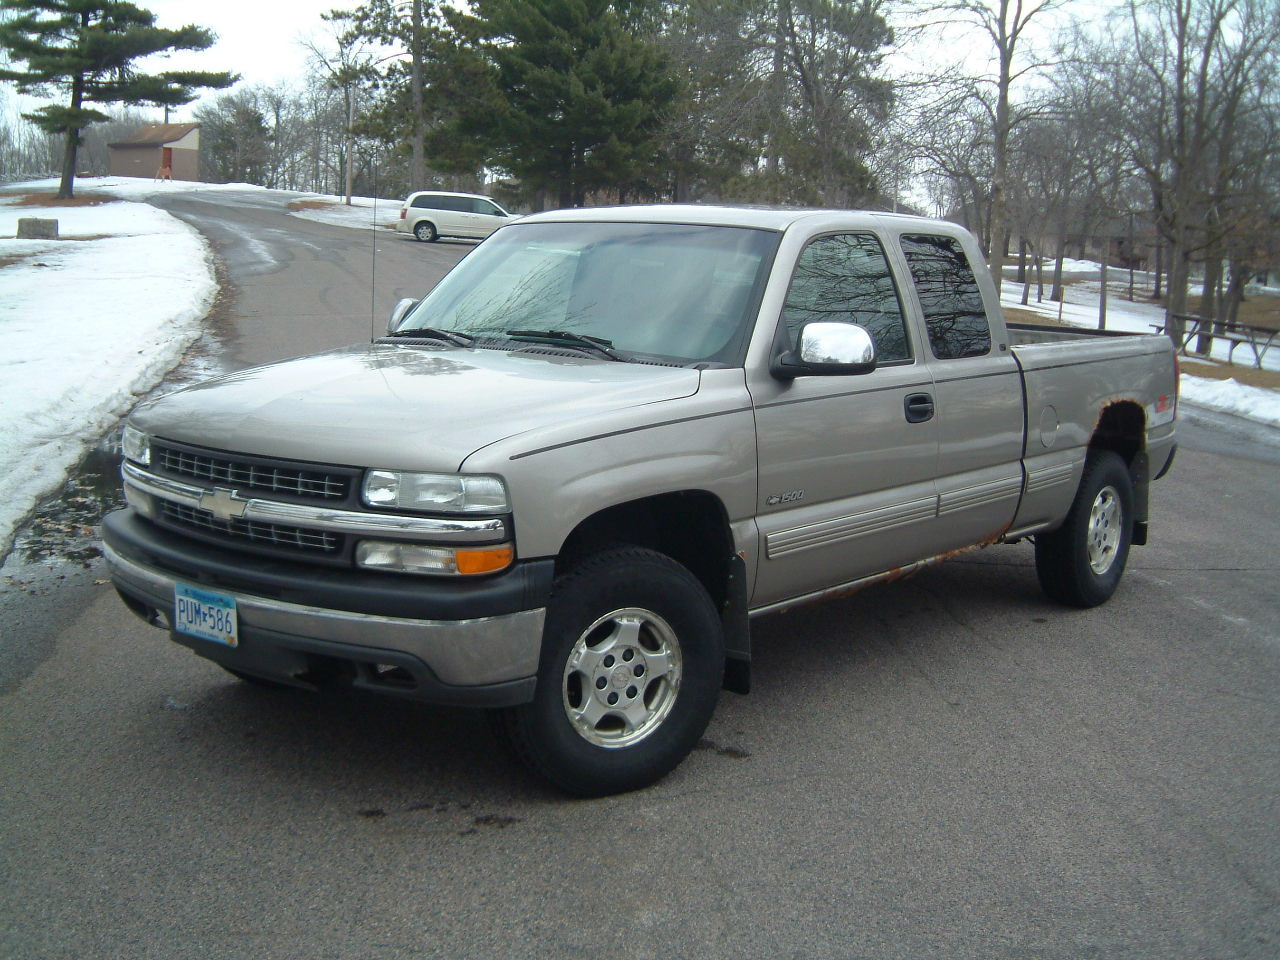 2000 chevrolet silverado 1500 pictures cargurus. Black Bedroom Furniture Sets. Home Design Ideas